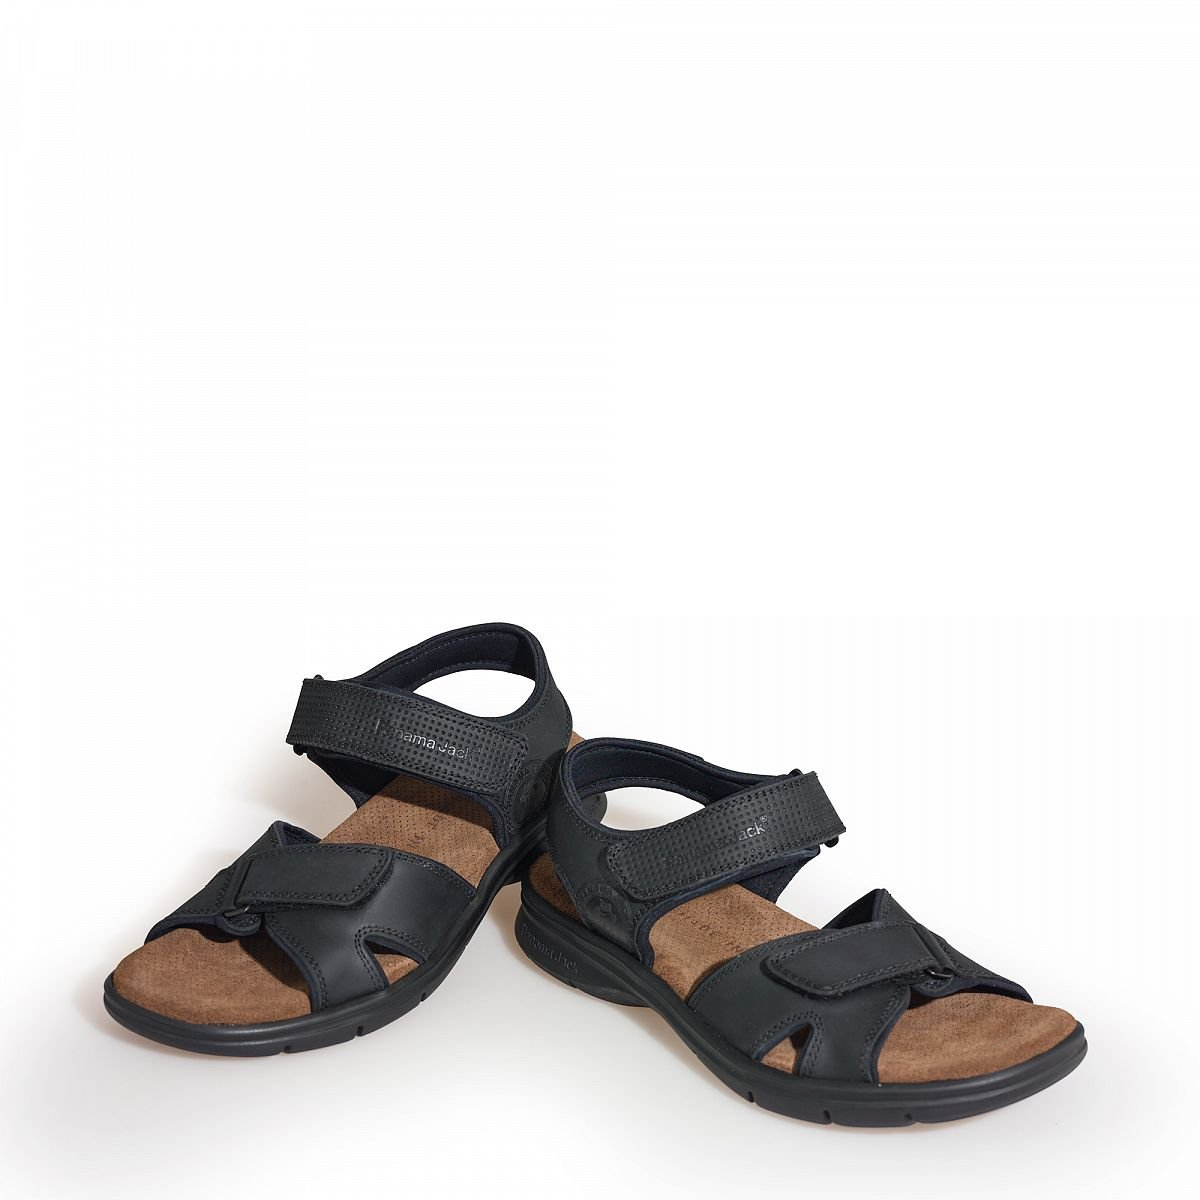 bef600c3cc7e3a Men s sandals SANDERS BASICS black